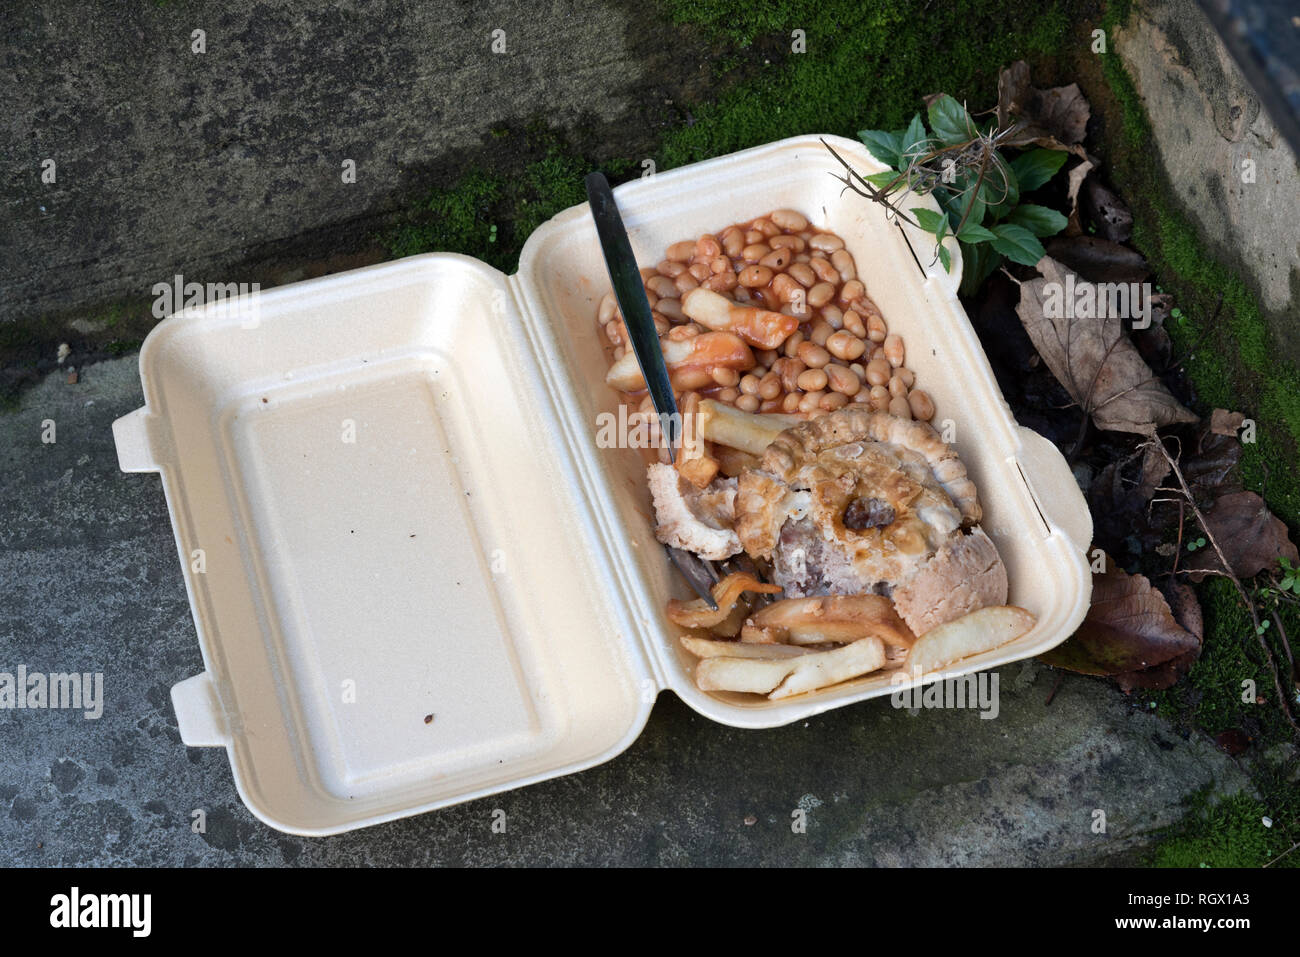 Take away food abandoned in the street, York, UK - Stock Image